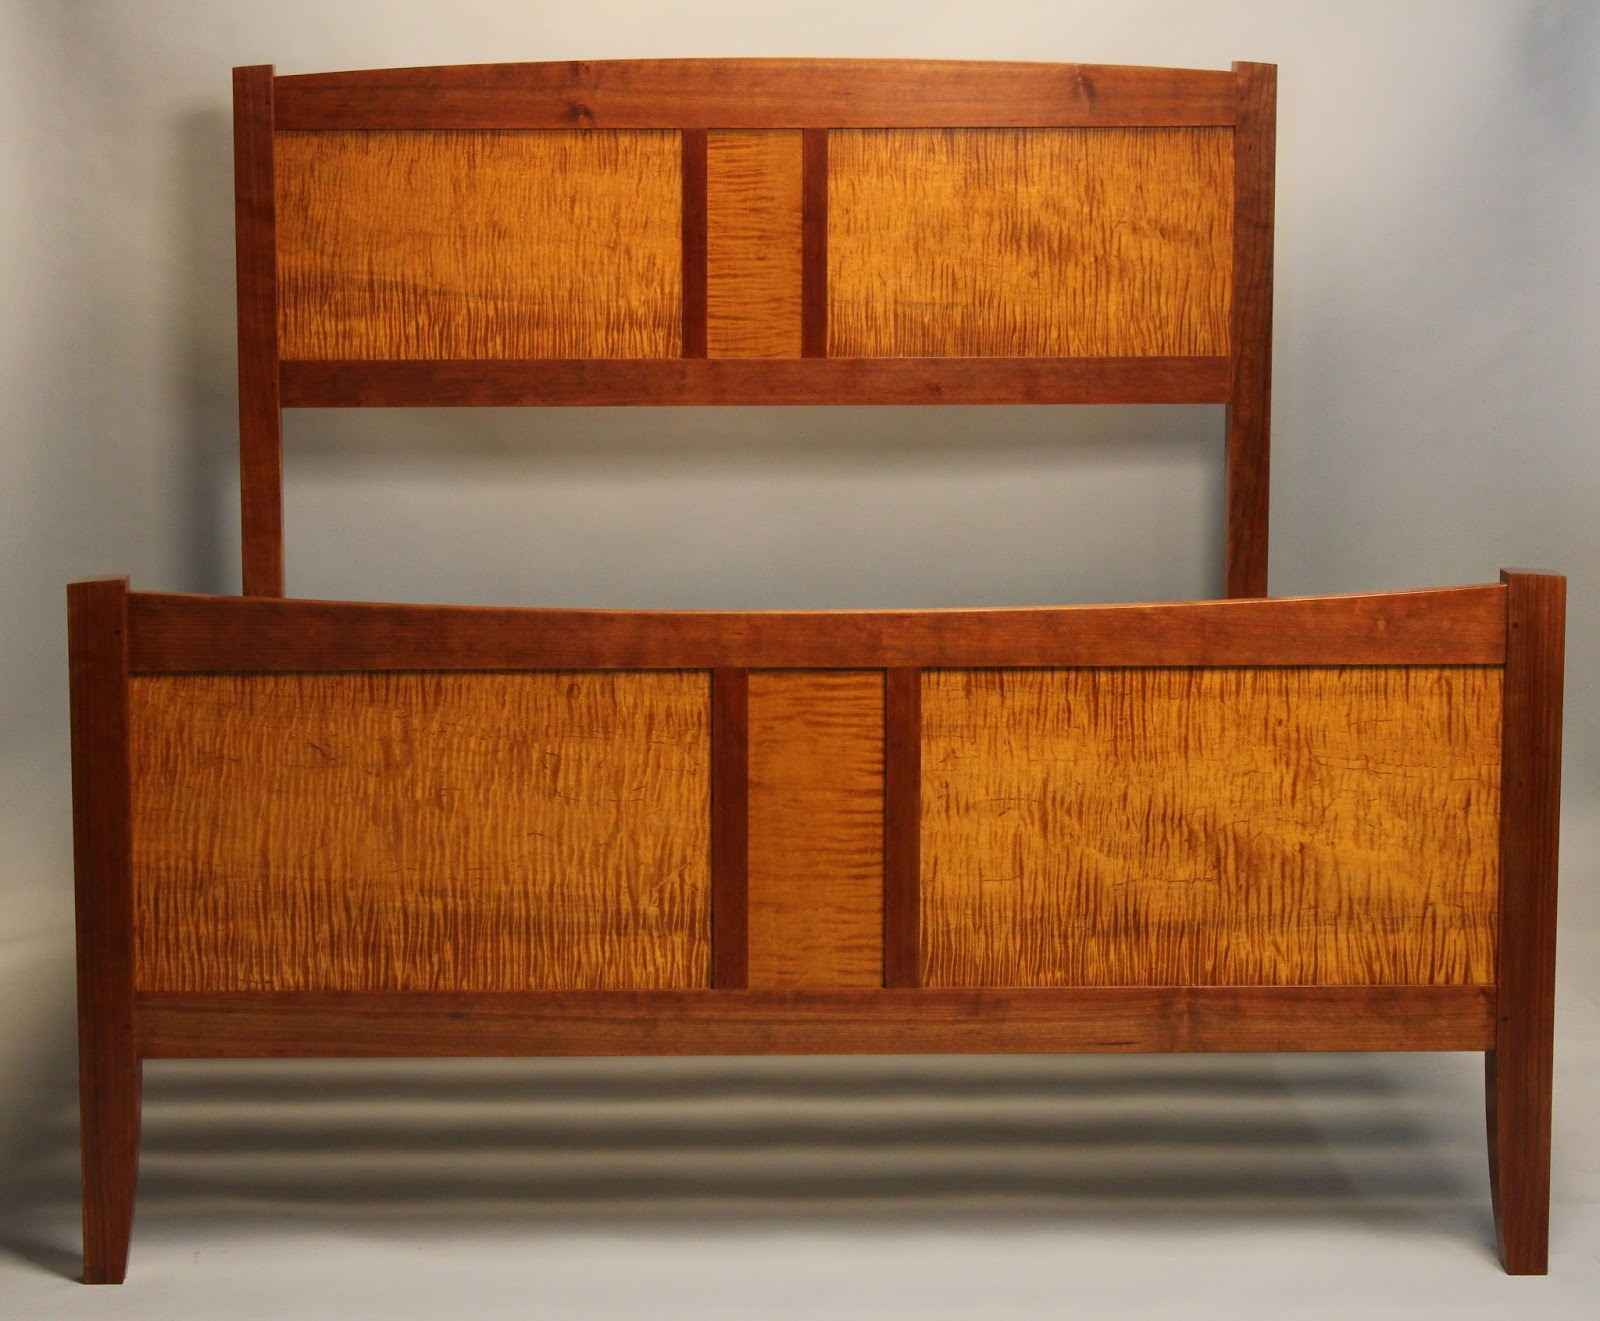 Doucette and Wolfe Fine Furniture Makers: Frame and Panel Bed